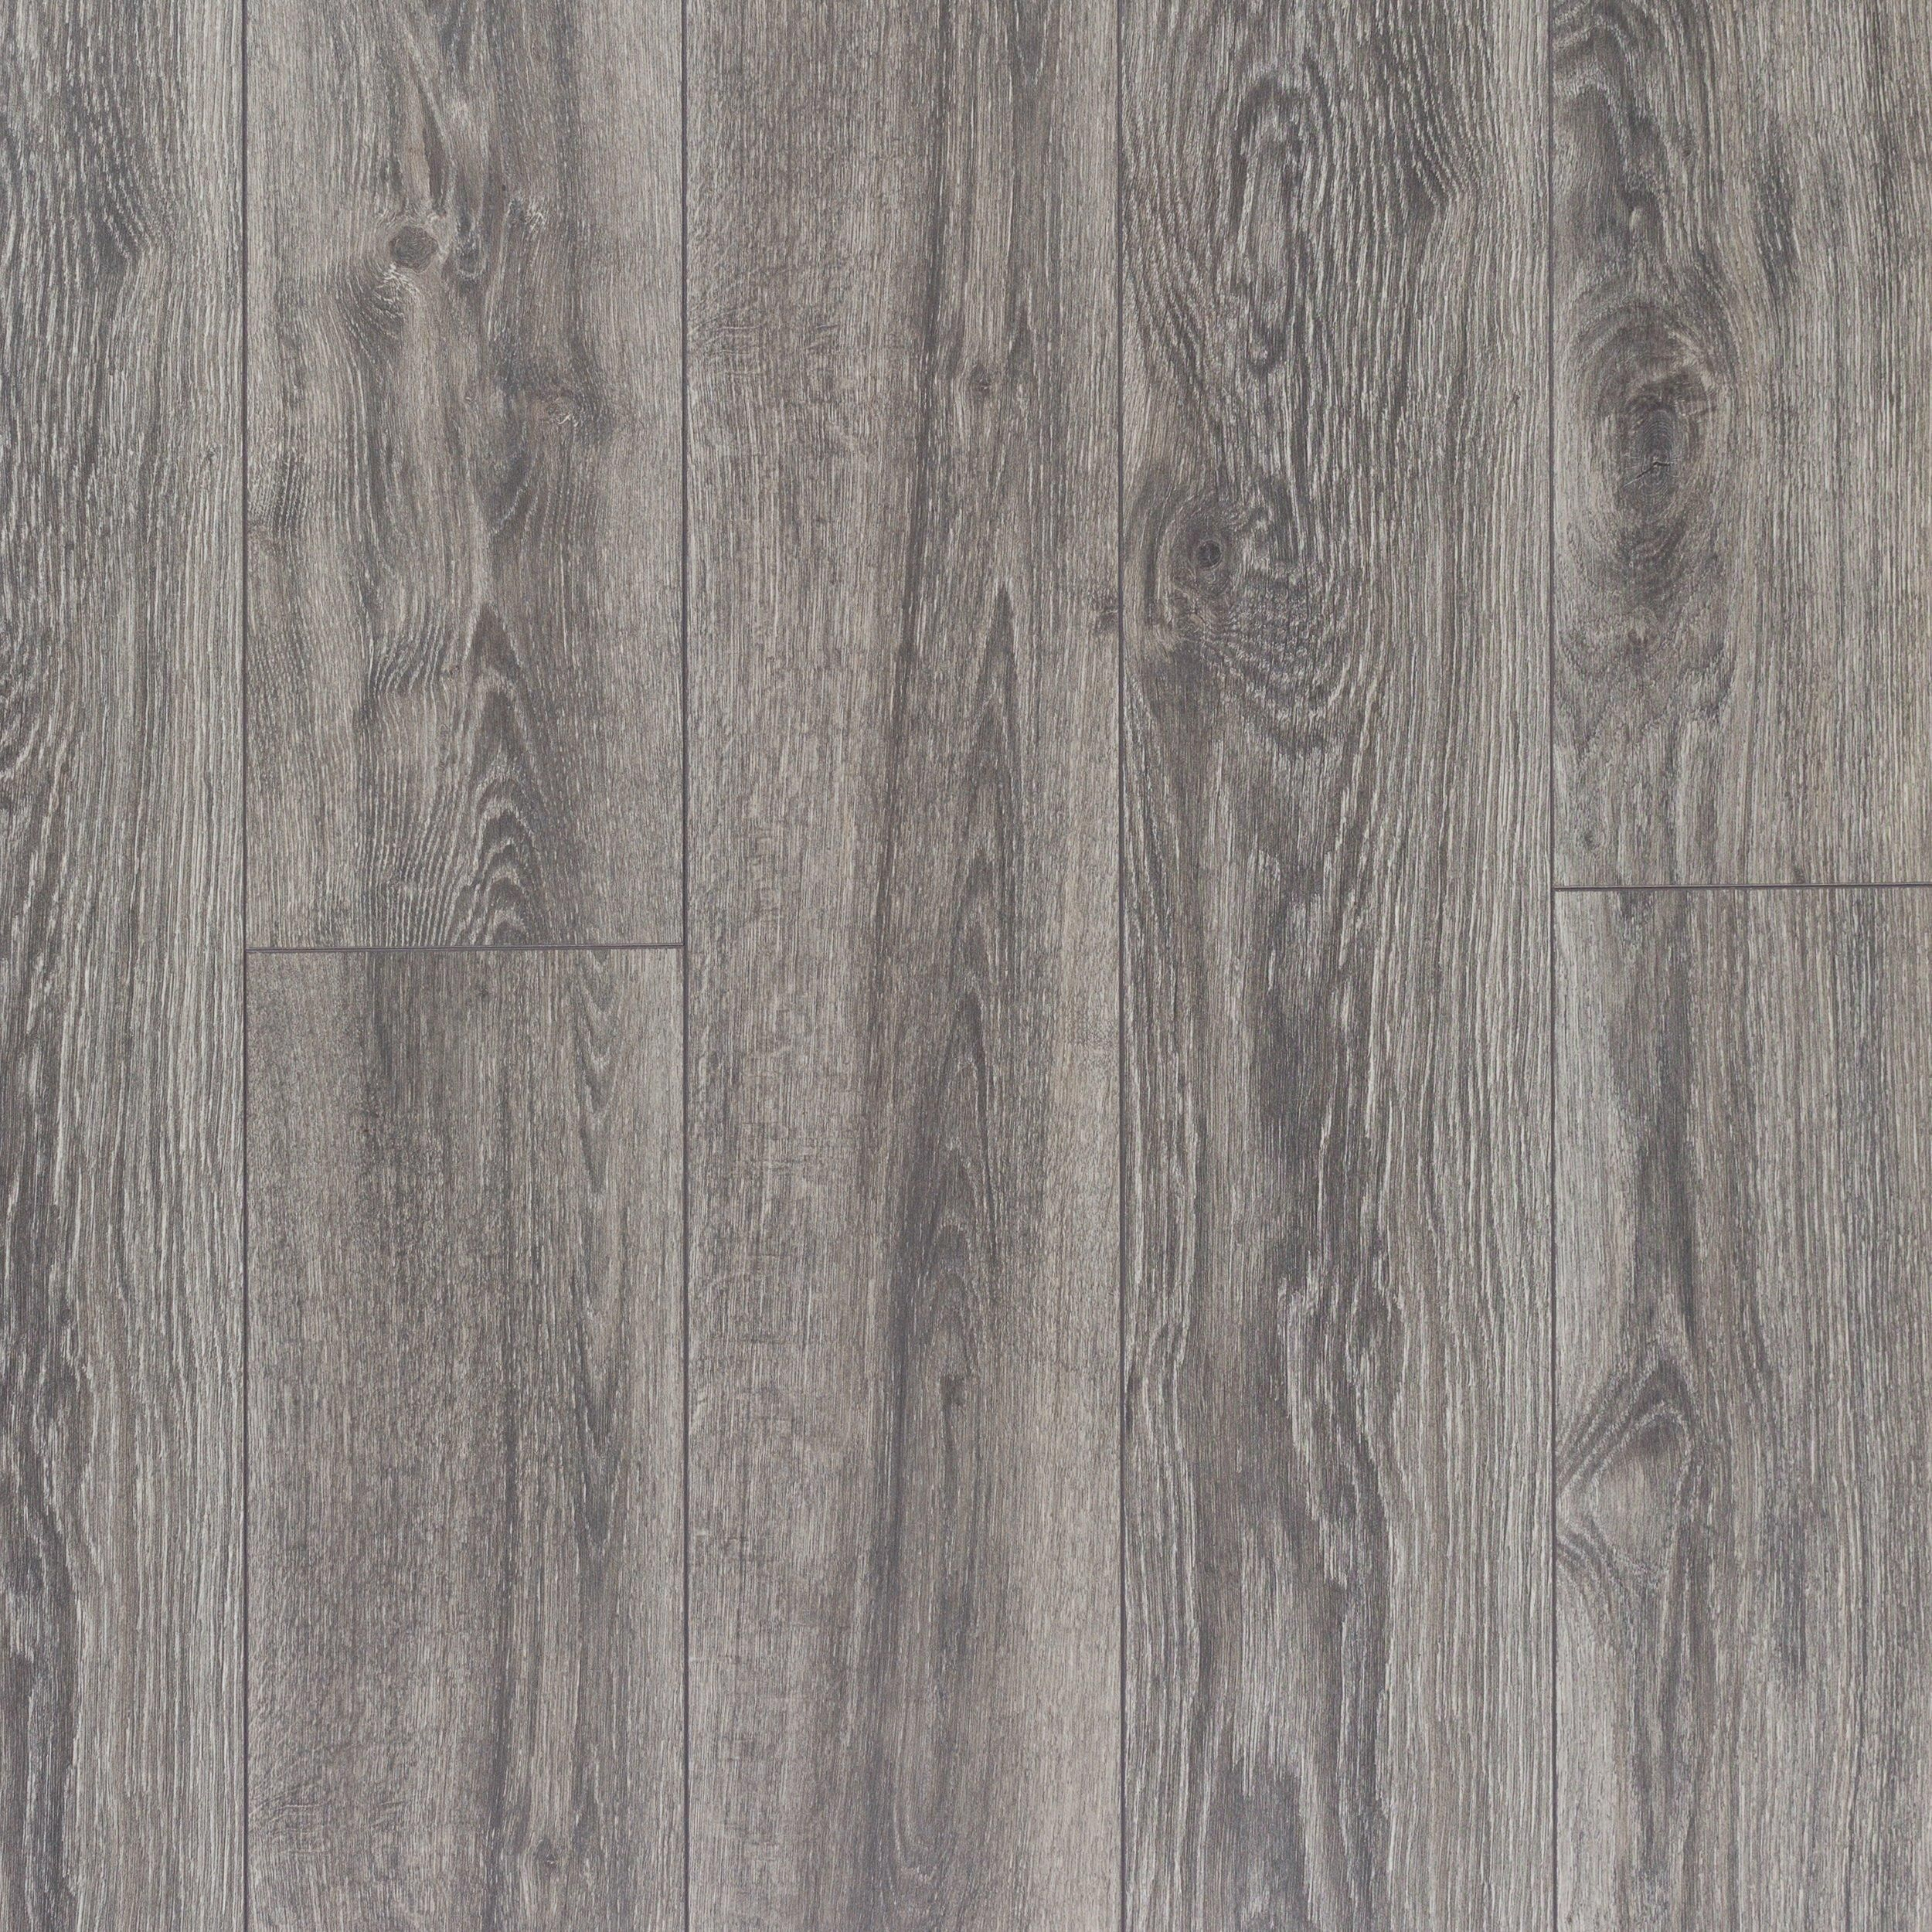 Thames Oak Matte Laminate Oak Laminate Flooring Oak Laminate Maple Laminate Flooring